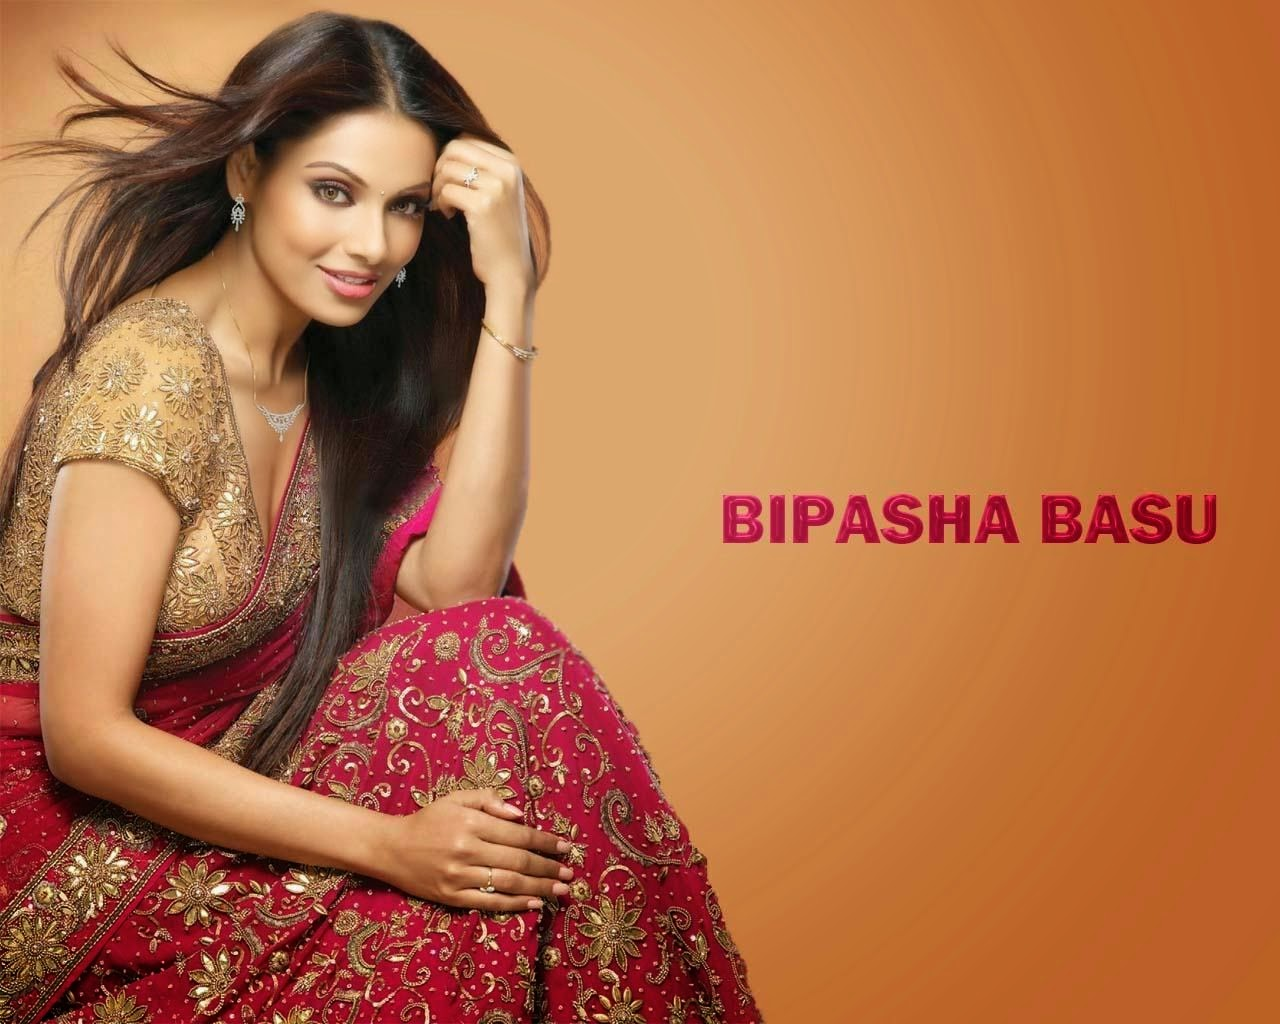 Bipasha basu cute wallpaper